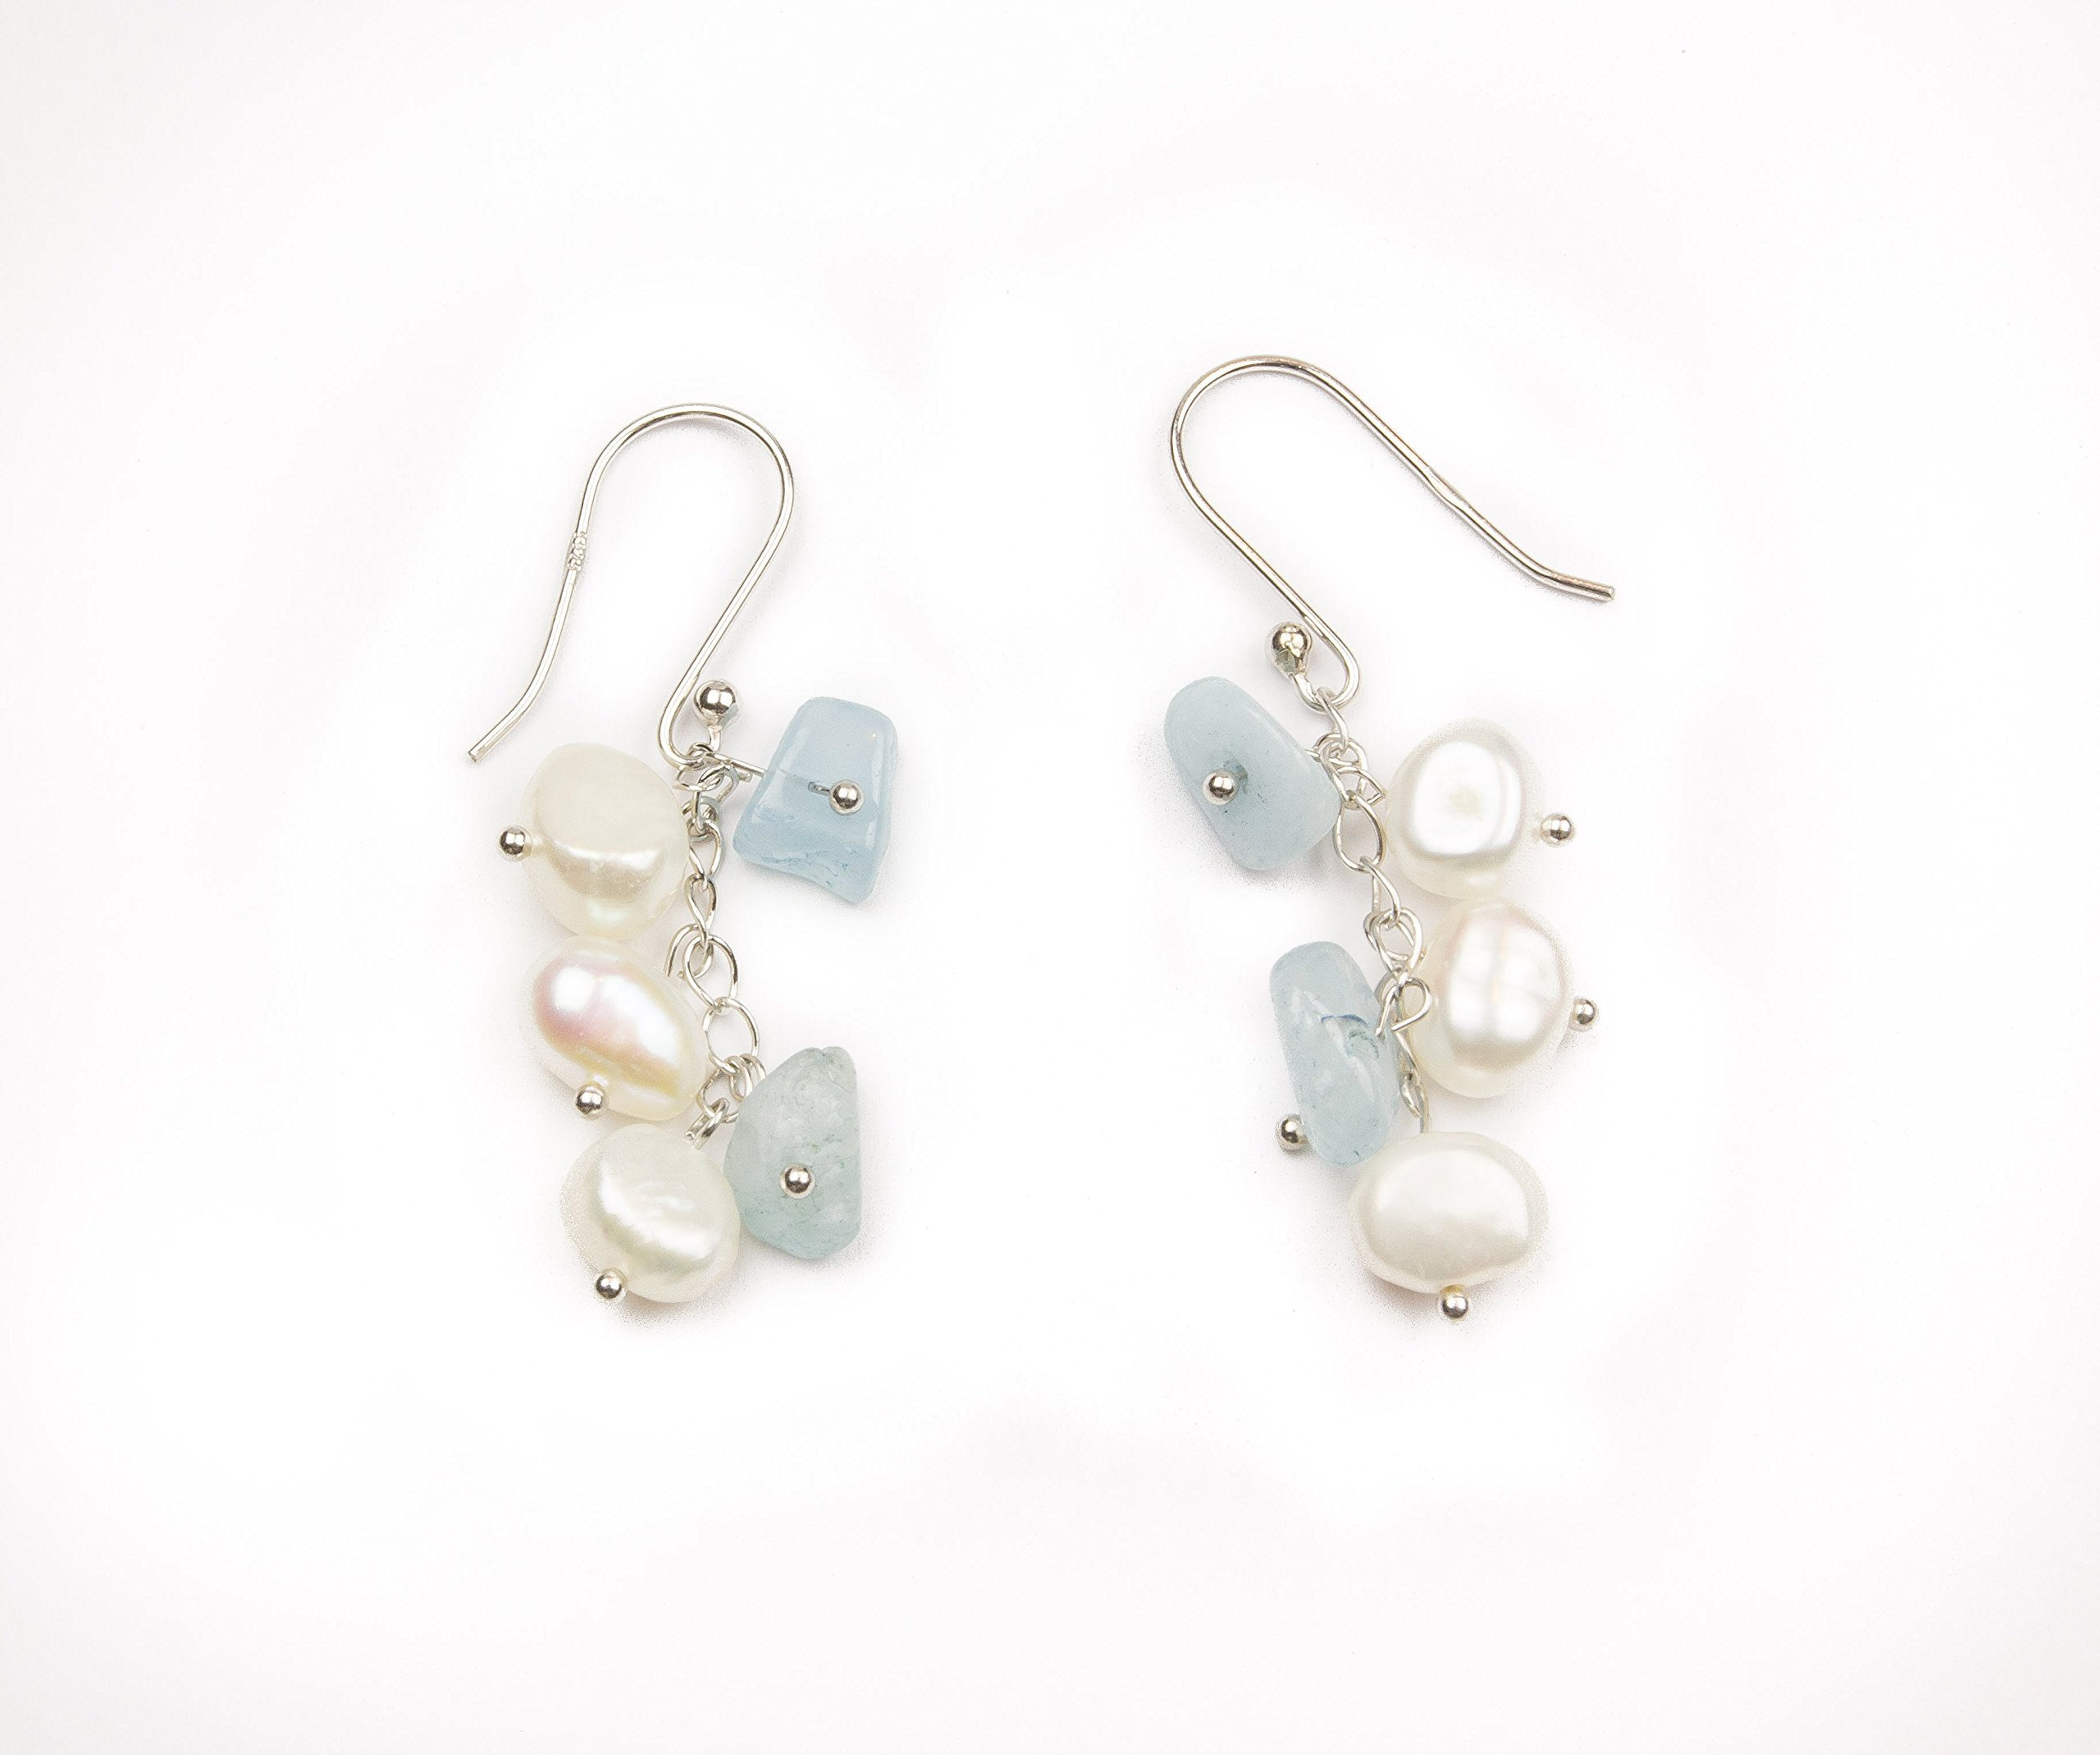 HinsonGayle 'Sky' 2-Strand Freshwater Cultured Pearl & Aquamarine Necklace & Dangle Earrings-40 in length by HinsonGayle Fine Pearl Jewelry (Image #3)